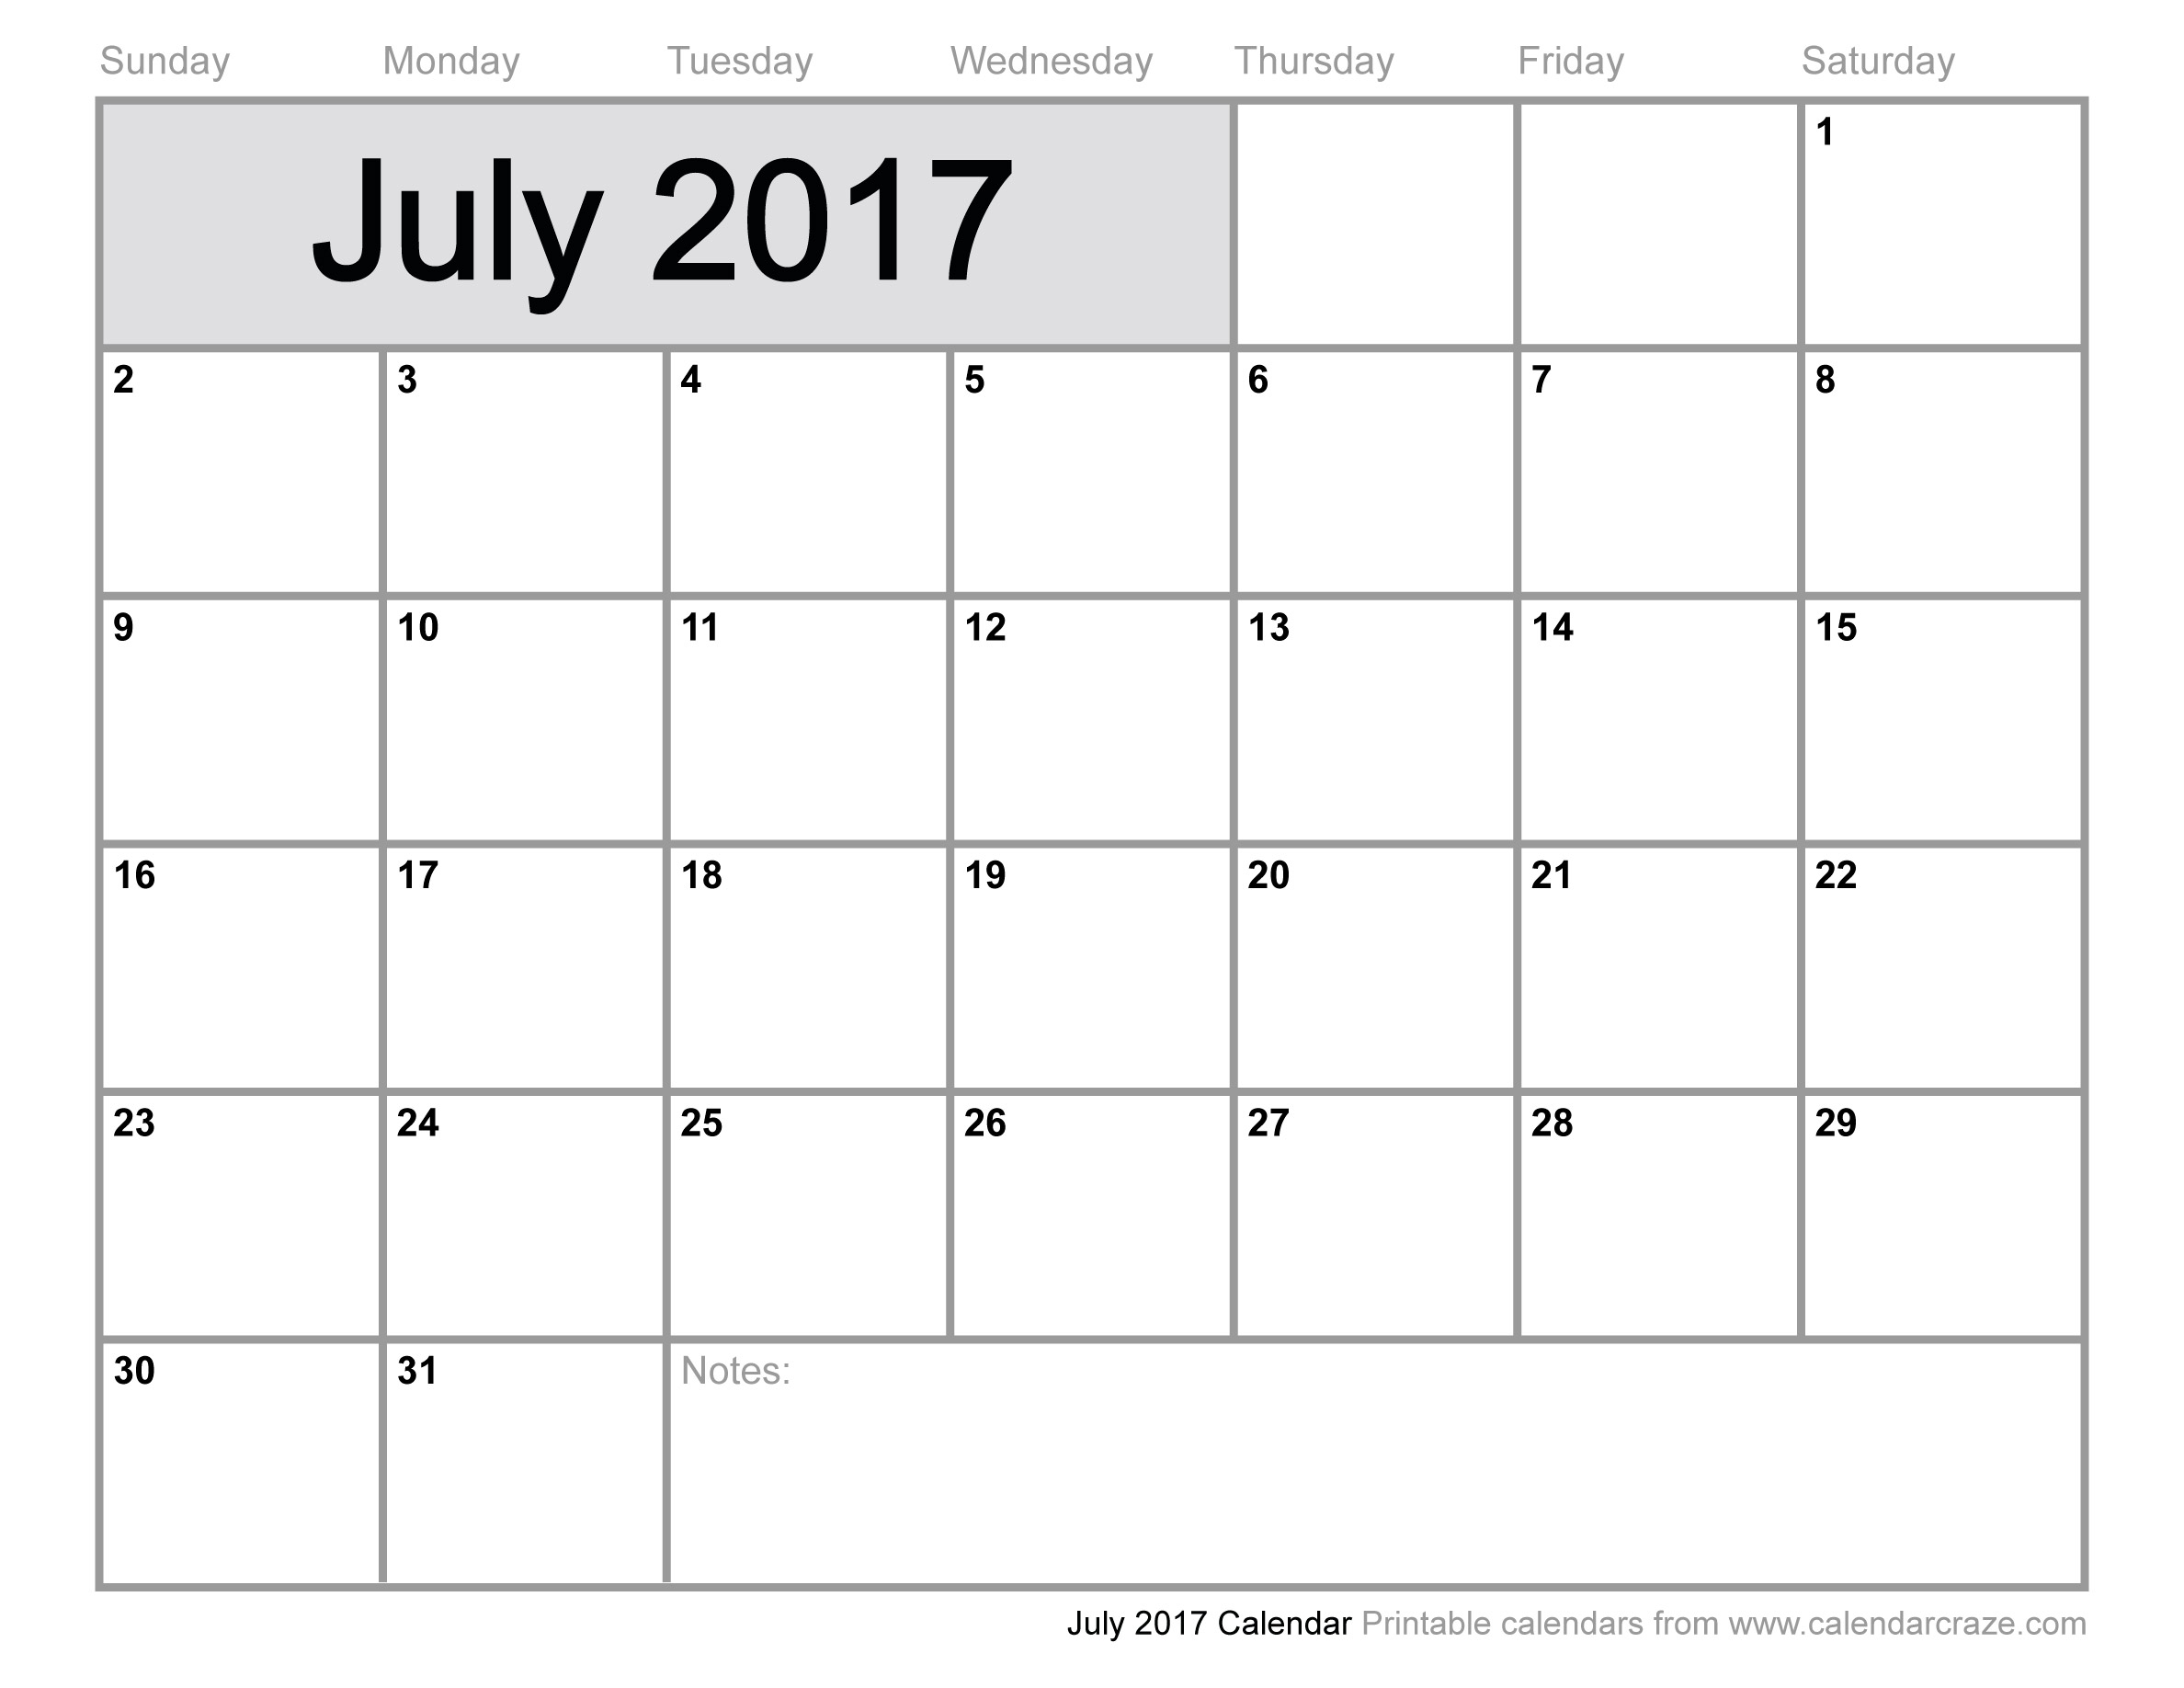 july-2017-blank-calendarprintable-psd-doc-templates